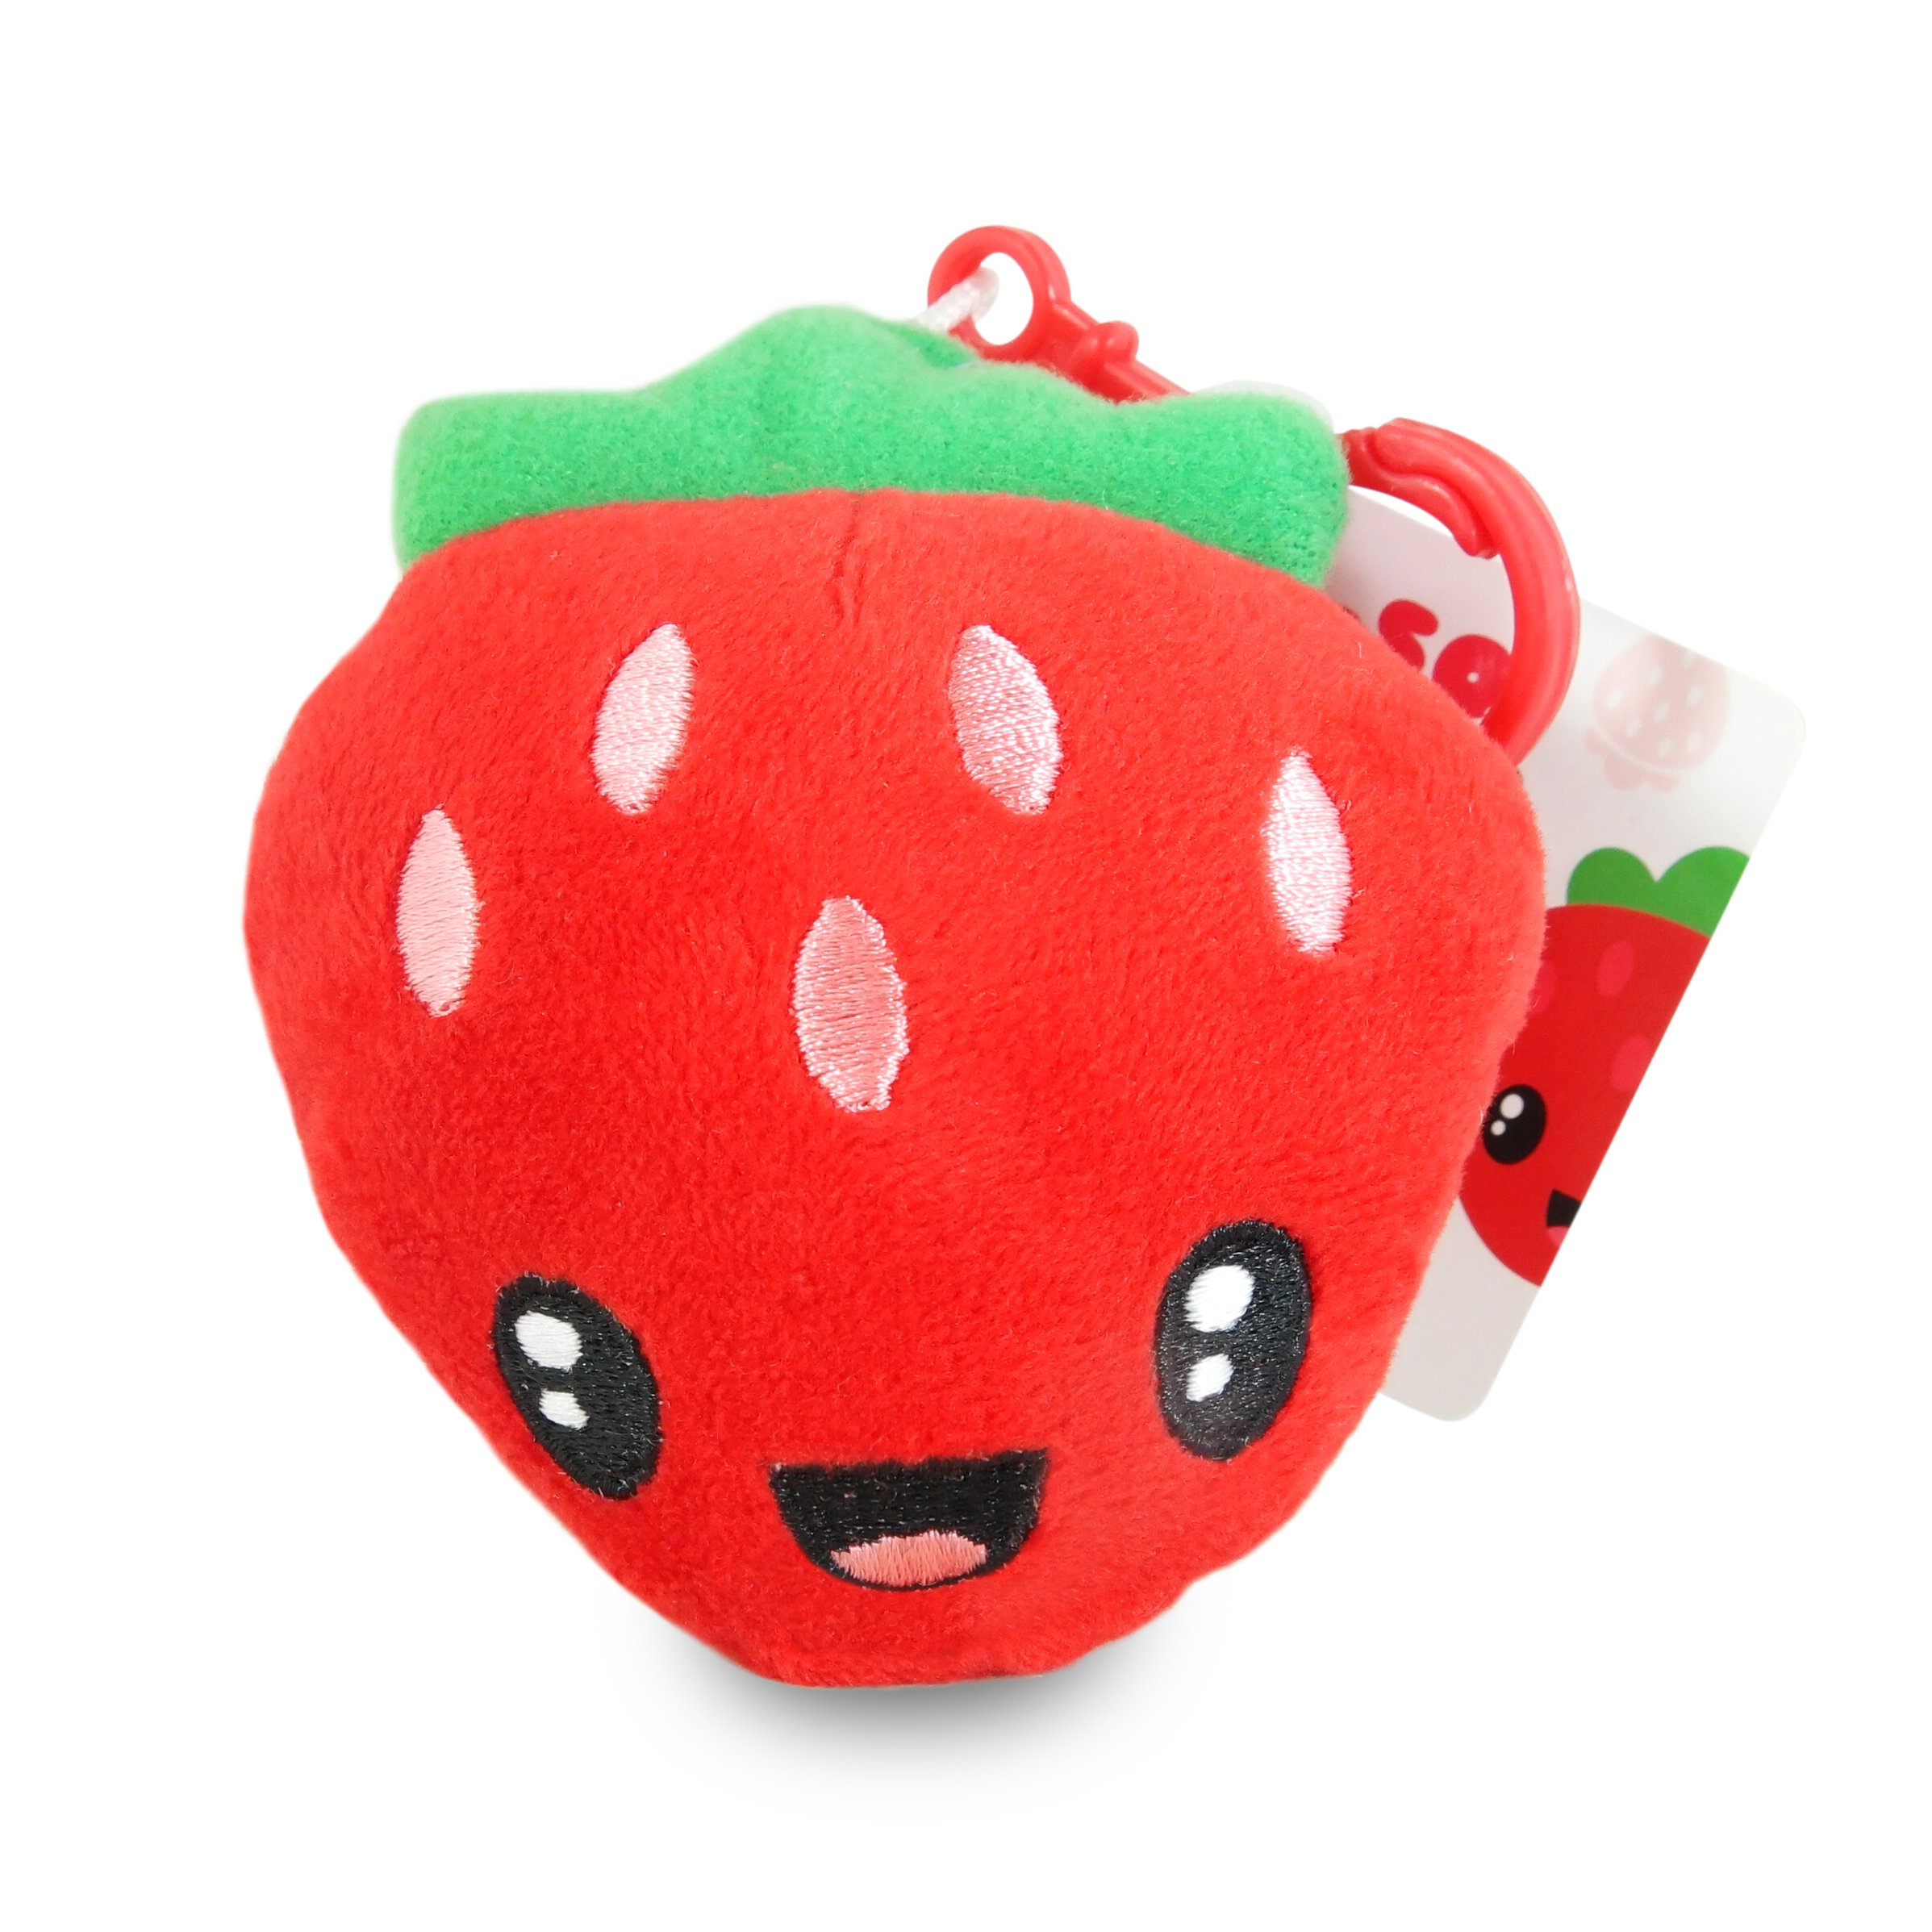 Scentco Fruit Troop Backpack Buddies - Scented Plush Toy Clips - Strawberry